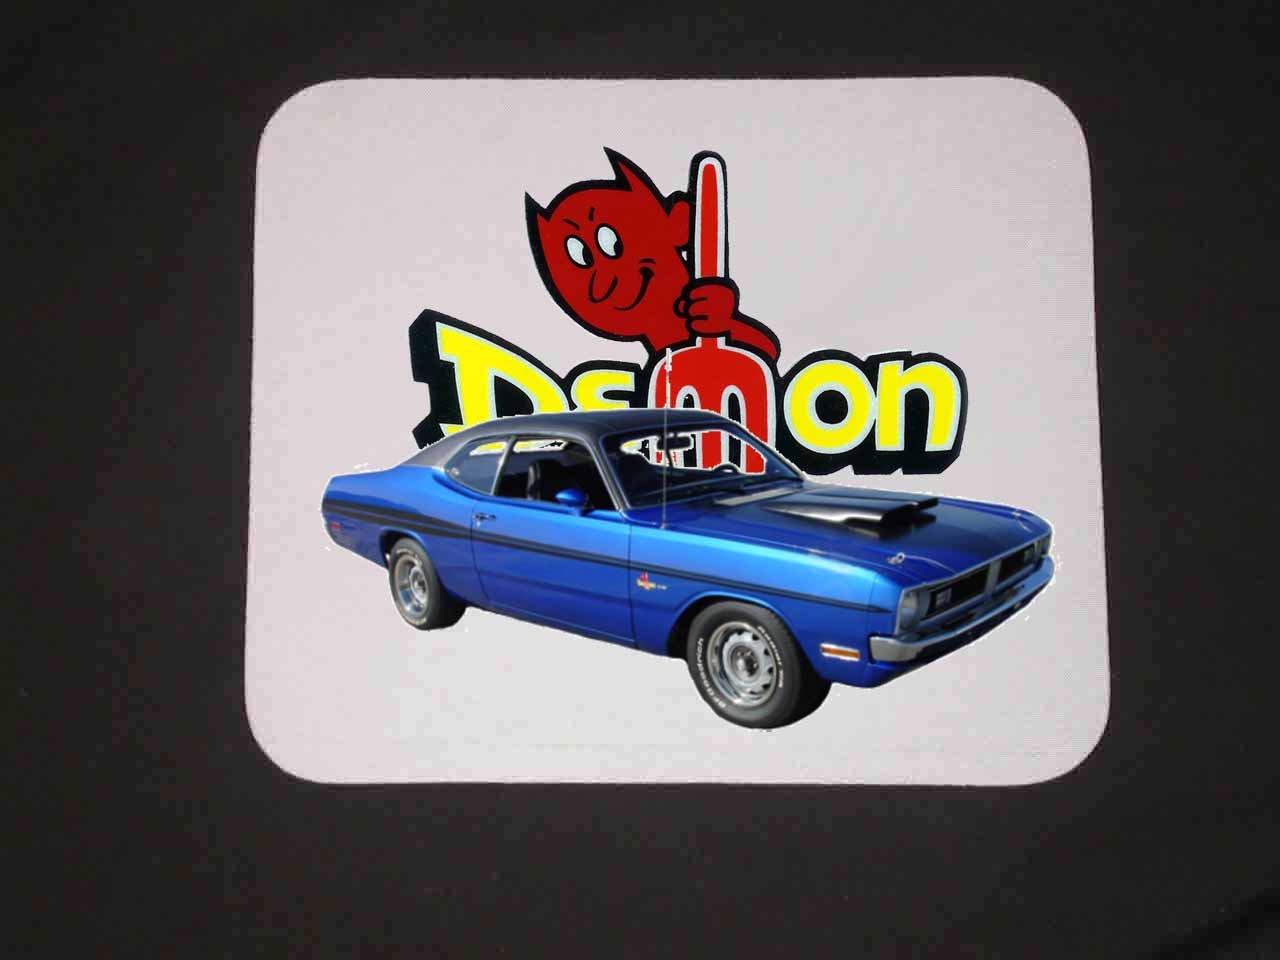 New 1971 Dodge Demon Mousepad